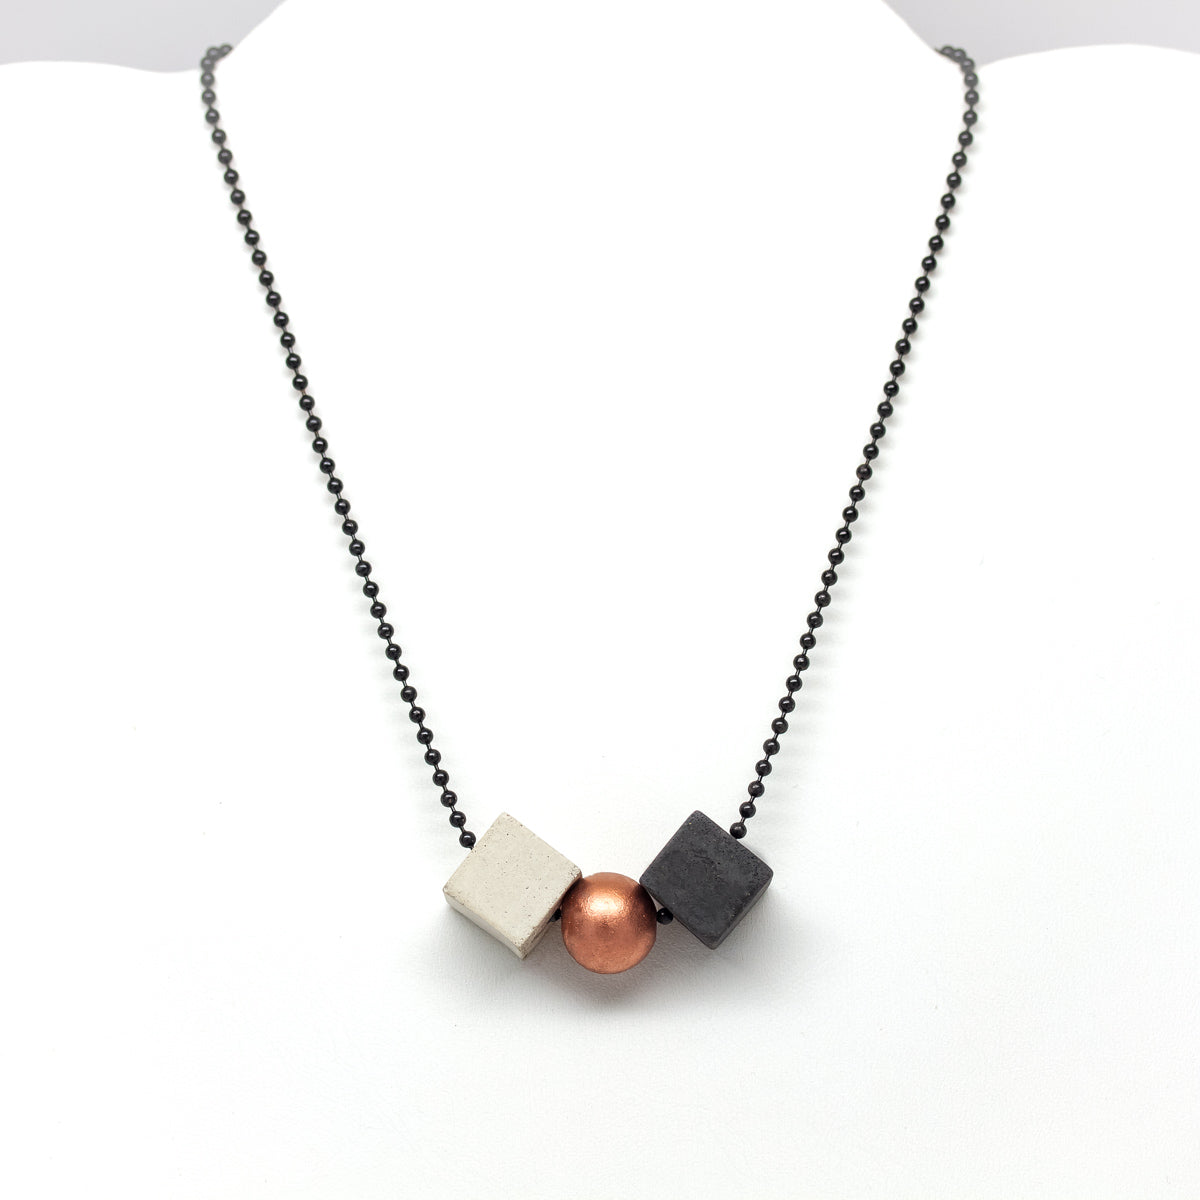 Concrete Mixed Geometric Necklace B-C-W